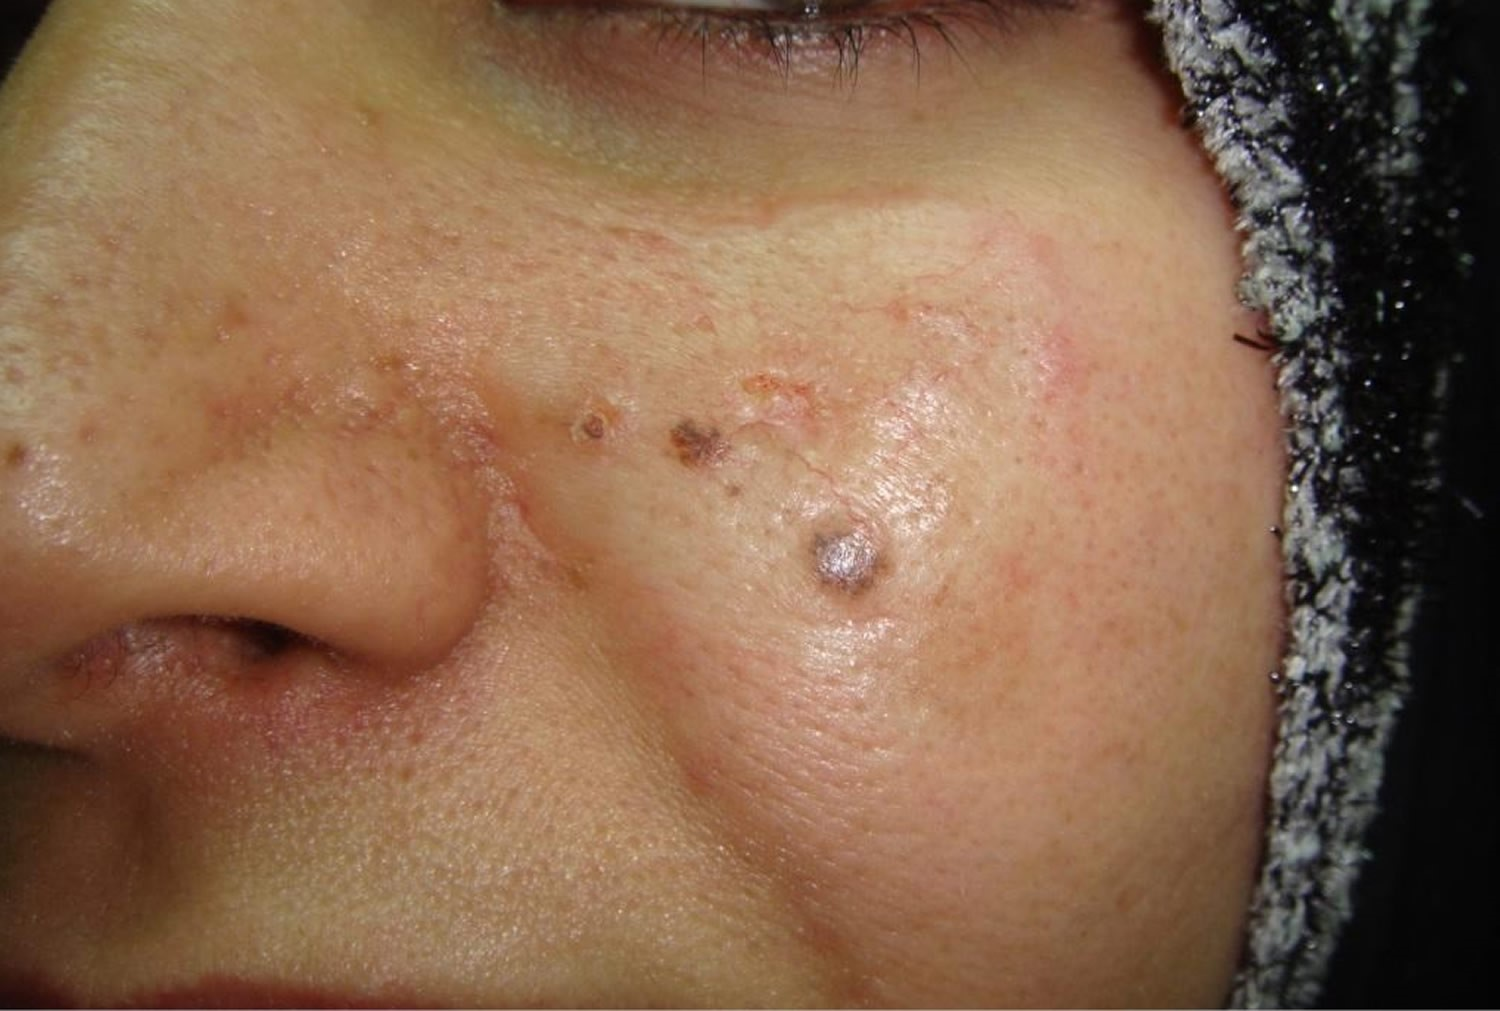 basal-cell-carcinoma-on-face